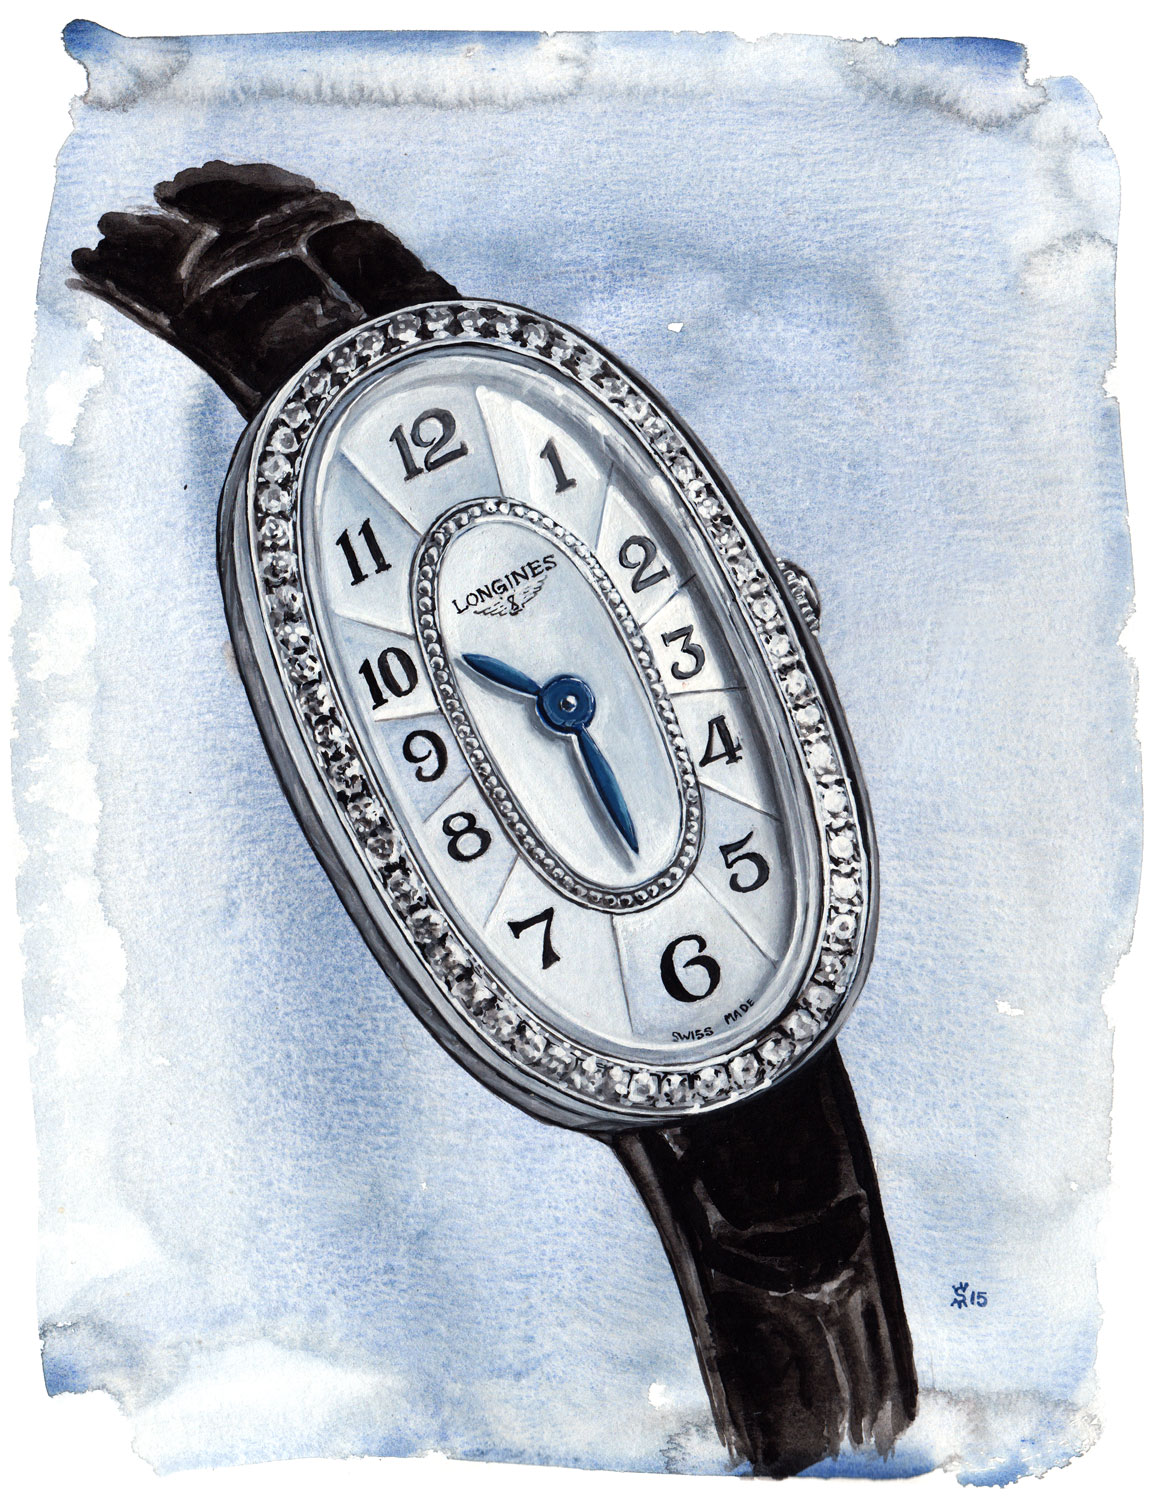 For the review of the Longines Symphonette visit  TimeandTideWatches.com .